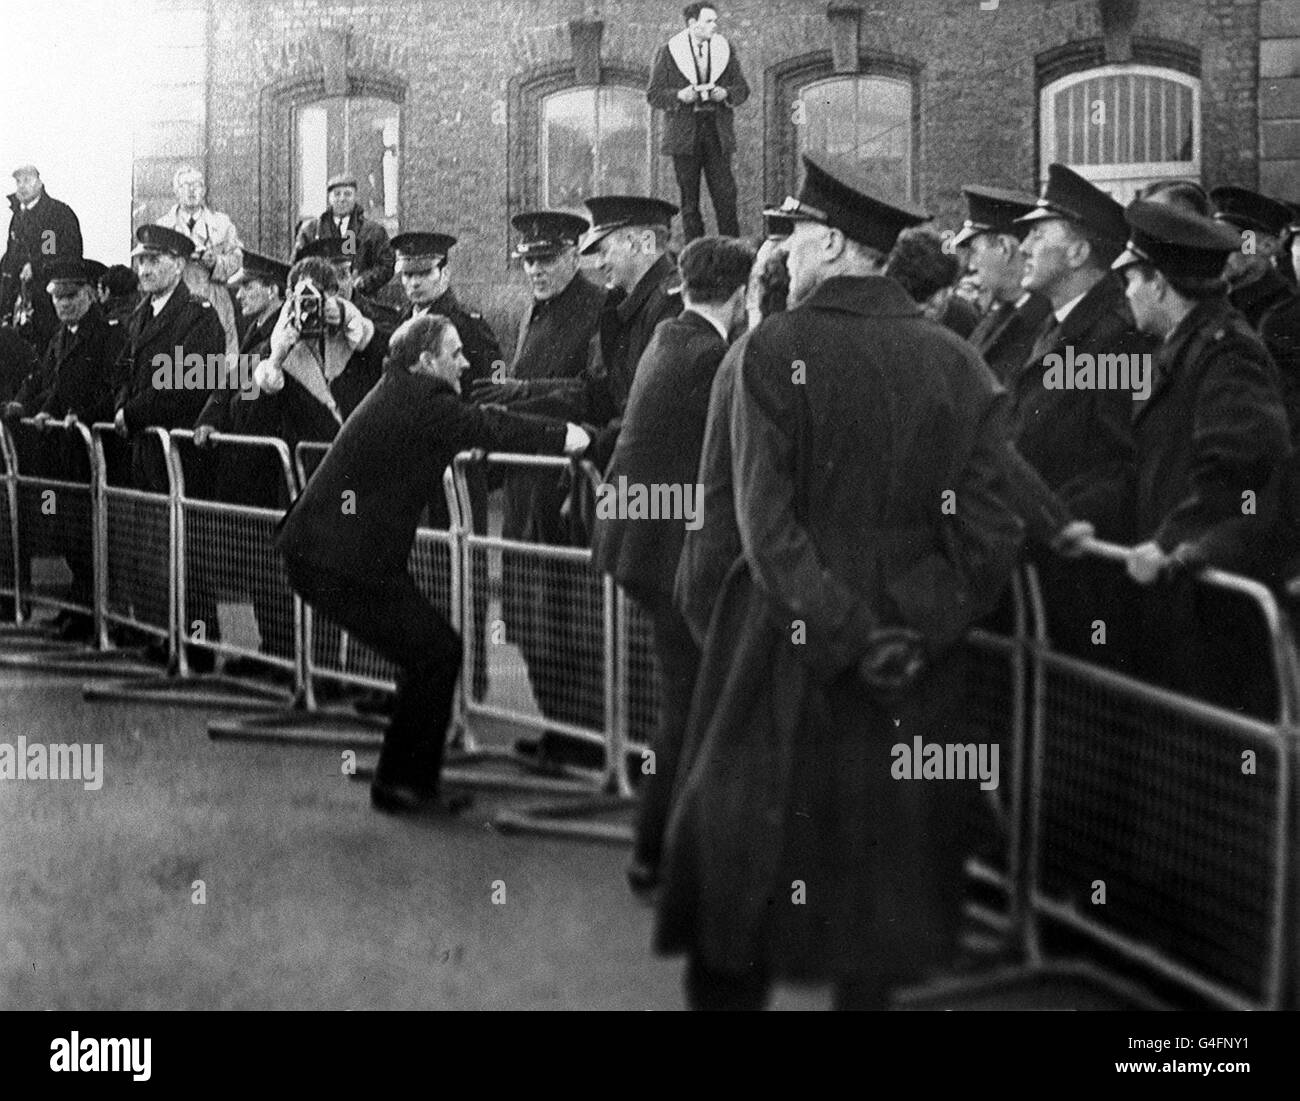 PA NEWS PHOTO 17/11/68 THE SCENE AT LONDONDERRY IN NORTHERN IRELAND DURING THE CIVIL RIGHTS DEMONSTRATIONS - Stock Image